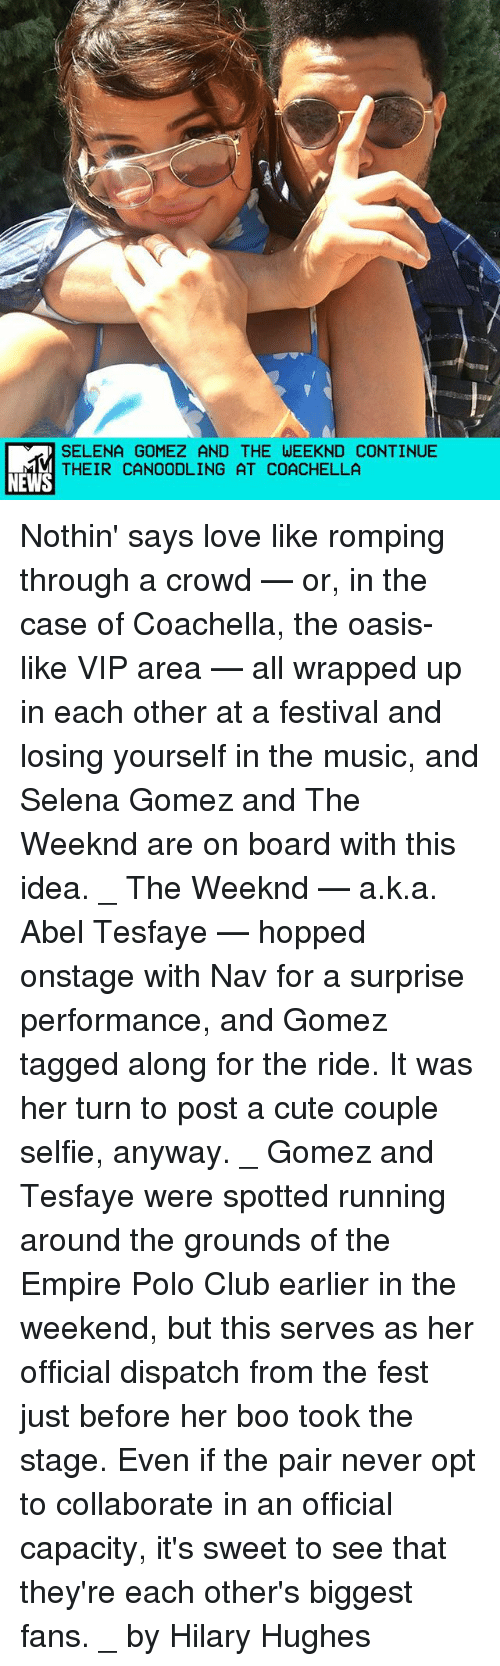 Boo, Club, and Coachella: SELENA GOMEZ AND THE WEEKND CONTINUE  THEIR CANOODLING AT COACHELLA  NEWS Nothin' says love like romping through a crowd — or, in the case of Coachella, the oasis-like VIP area — all wrapped up in each other at a festival and losing yourself in the music, and Selena Gomez and The Weeknd are on board with this idea. _ The Weeknd — a.k.a. Abel Tesfaye — hopped onstage with Nav for a surprise performance, and Gomez tagged along for the ride. It was her turn to post a cute couple selfie, anyway. _ Gomez and Tesfaye were spotted running around the grounds of the Empire Polo Club earlier in the weekend, but this serves as her official dispatch from the fest just before her boo took the stage. Even if the pair never opt to collaborate in an official capacity, it's sweet to see that they're each other's biggest fans. _ by Hilary Hughes